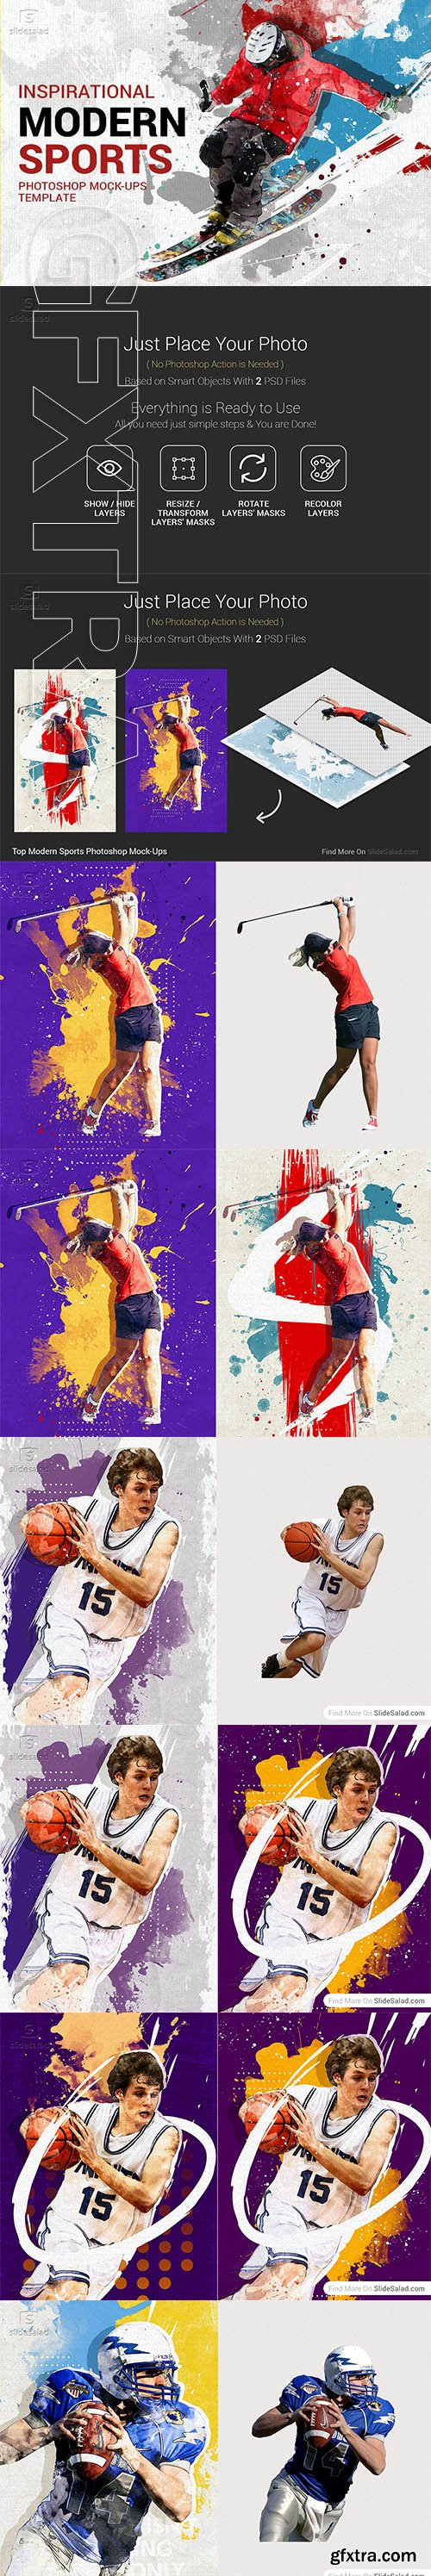 CreativeMarket - Top Modern Sports Photoshop Mock-Ups 3324367